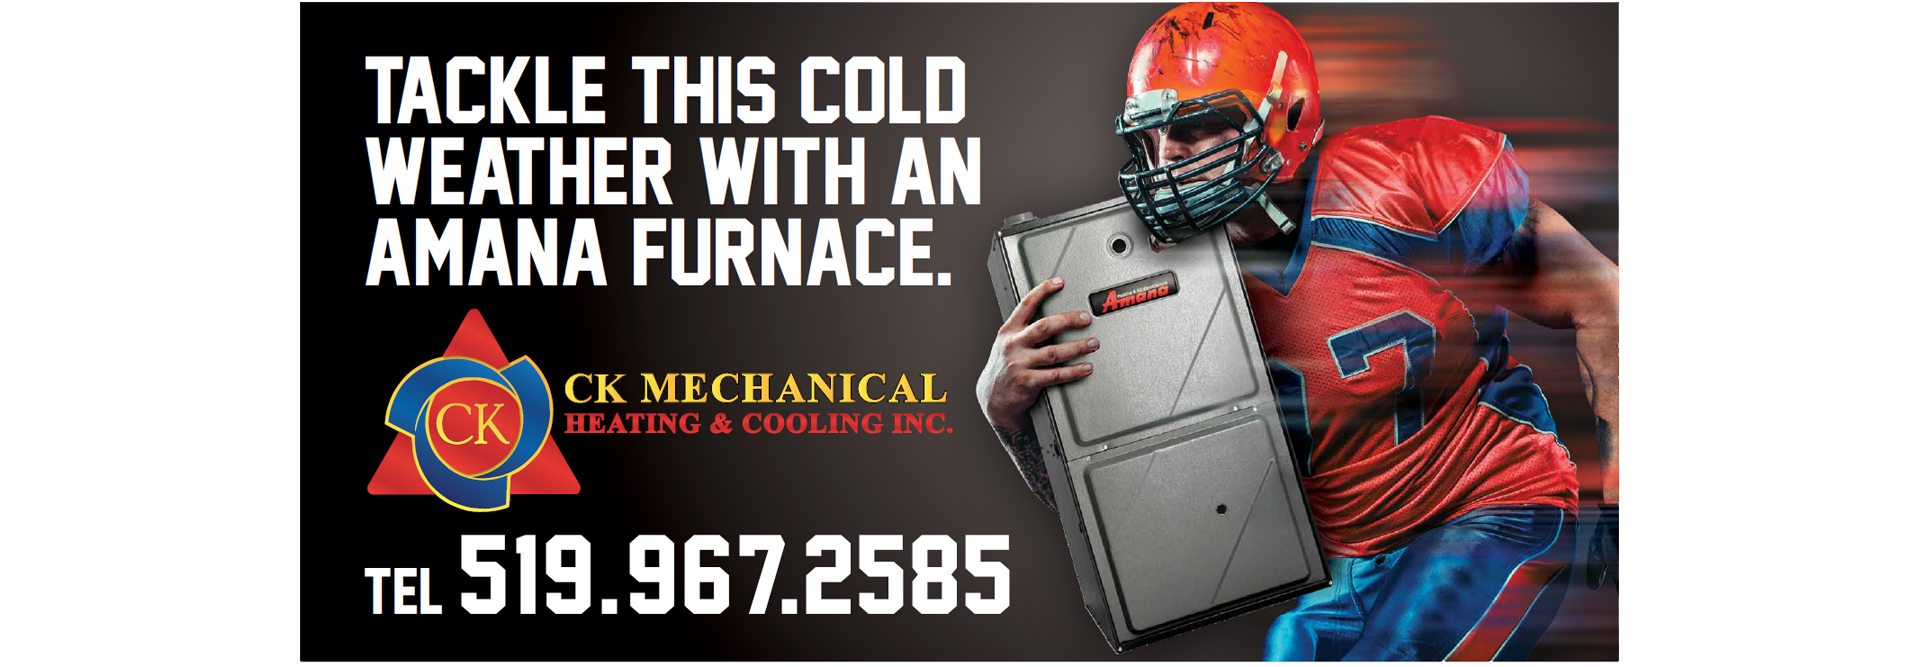 Tackle the cold with an Amana Furnace from CK Mechanical